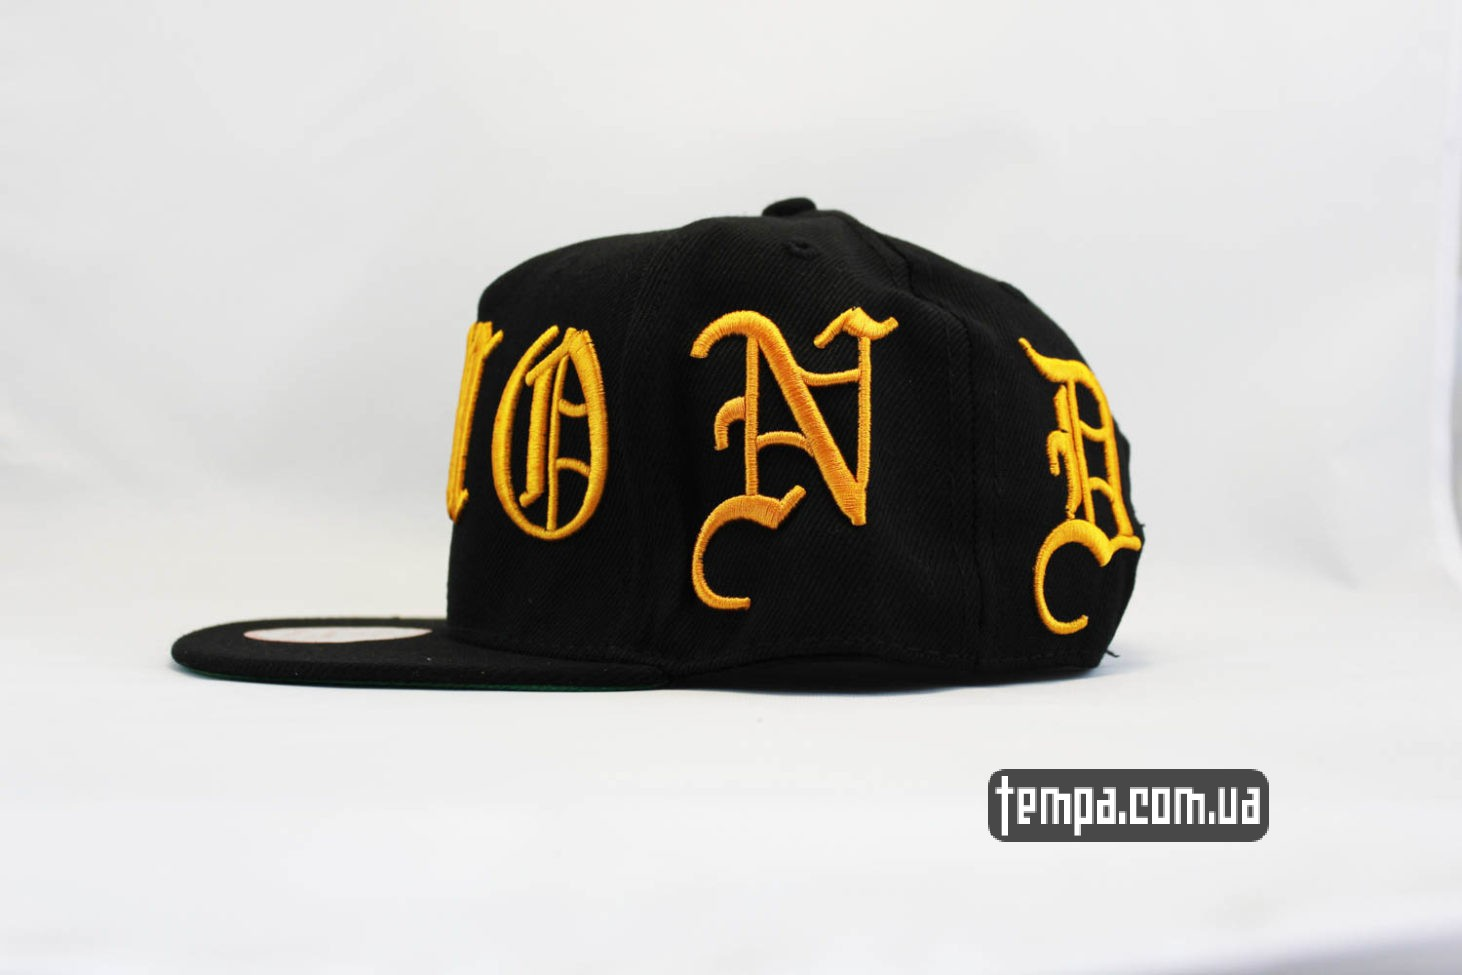 бейсболки купить кепка snapback DIAMOND Ghetto Gangter черная